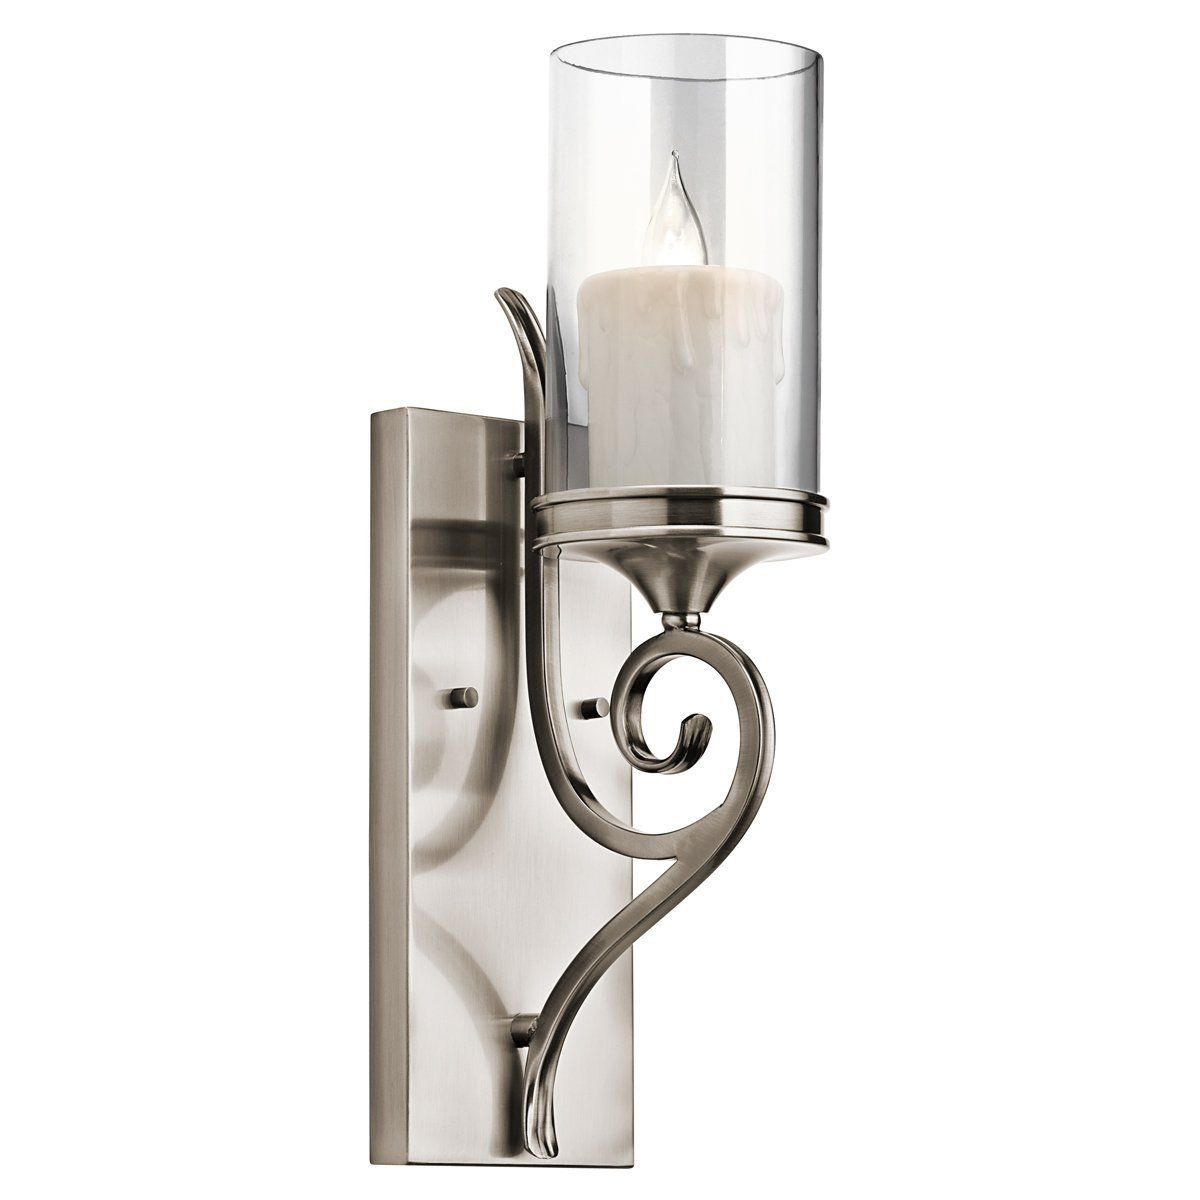 Kichler lighting 45362clp lara 1 light wall sconce classic pewter kichler 45362 1 light up light wall sconce from the lara collection amipublicfo Gallery